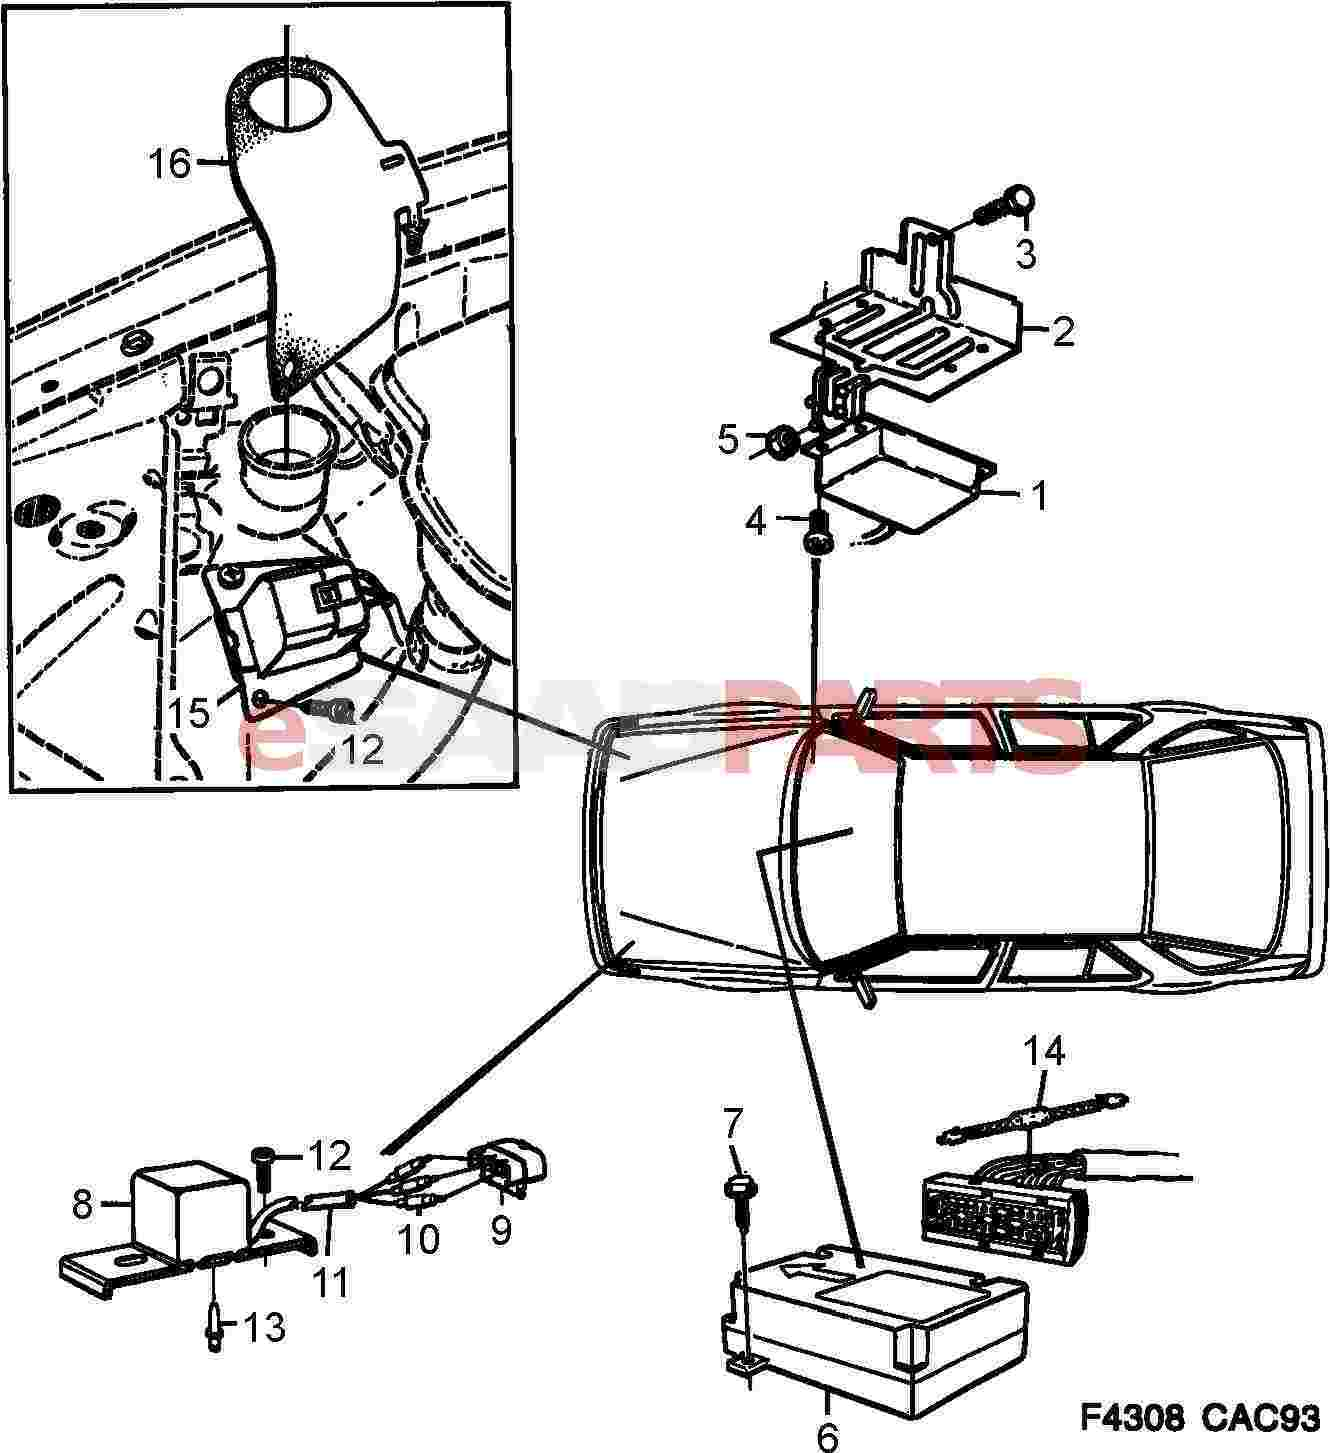 hight resolution of saab 9000 fuse box location wiring librarysaab 900 roof wiring diagram wiring diagram and fuse box